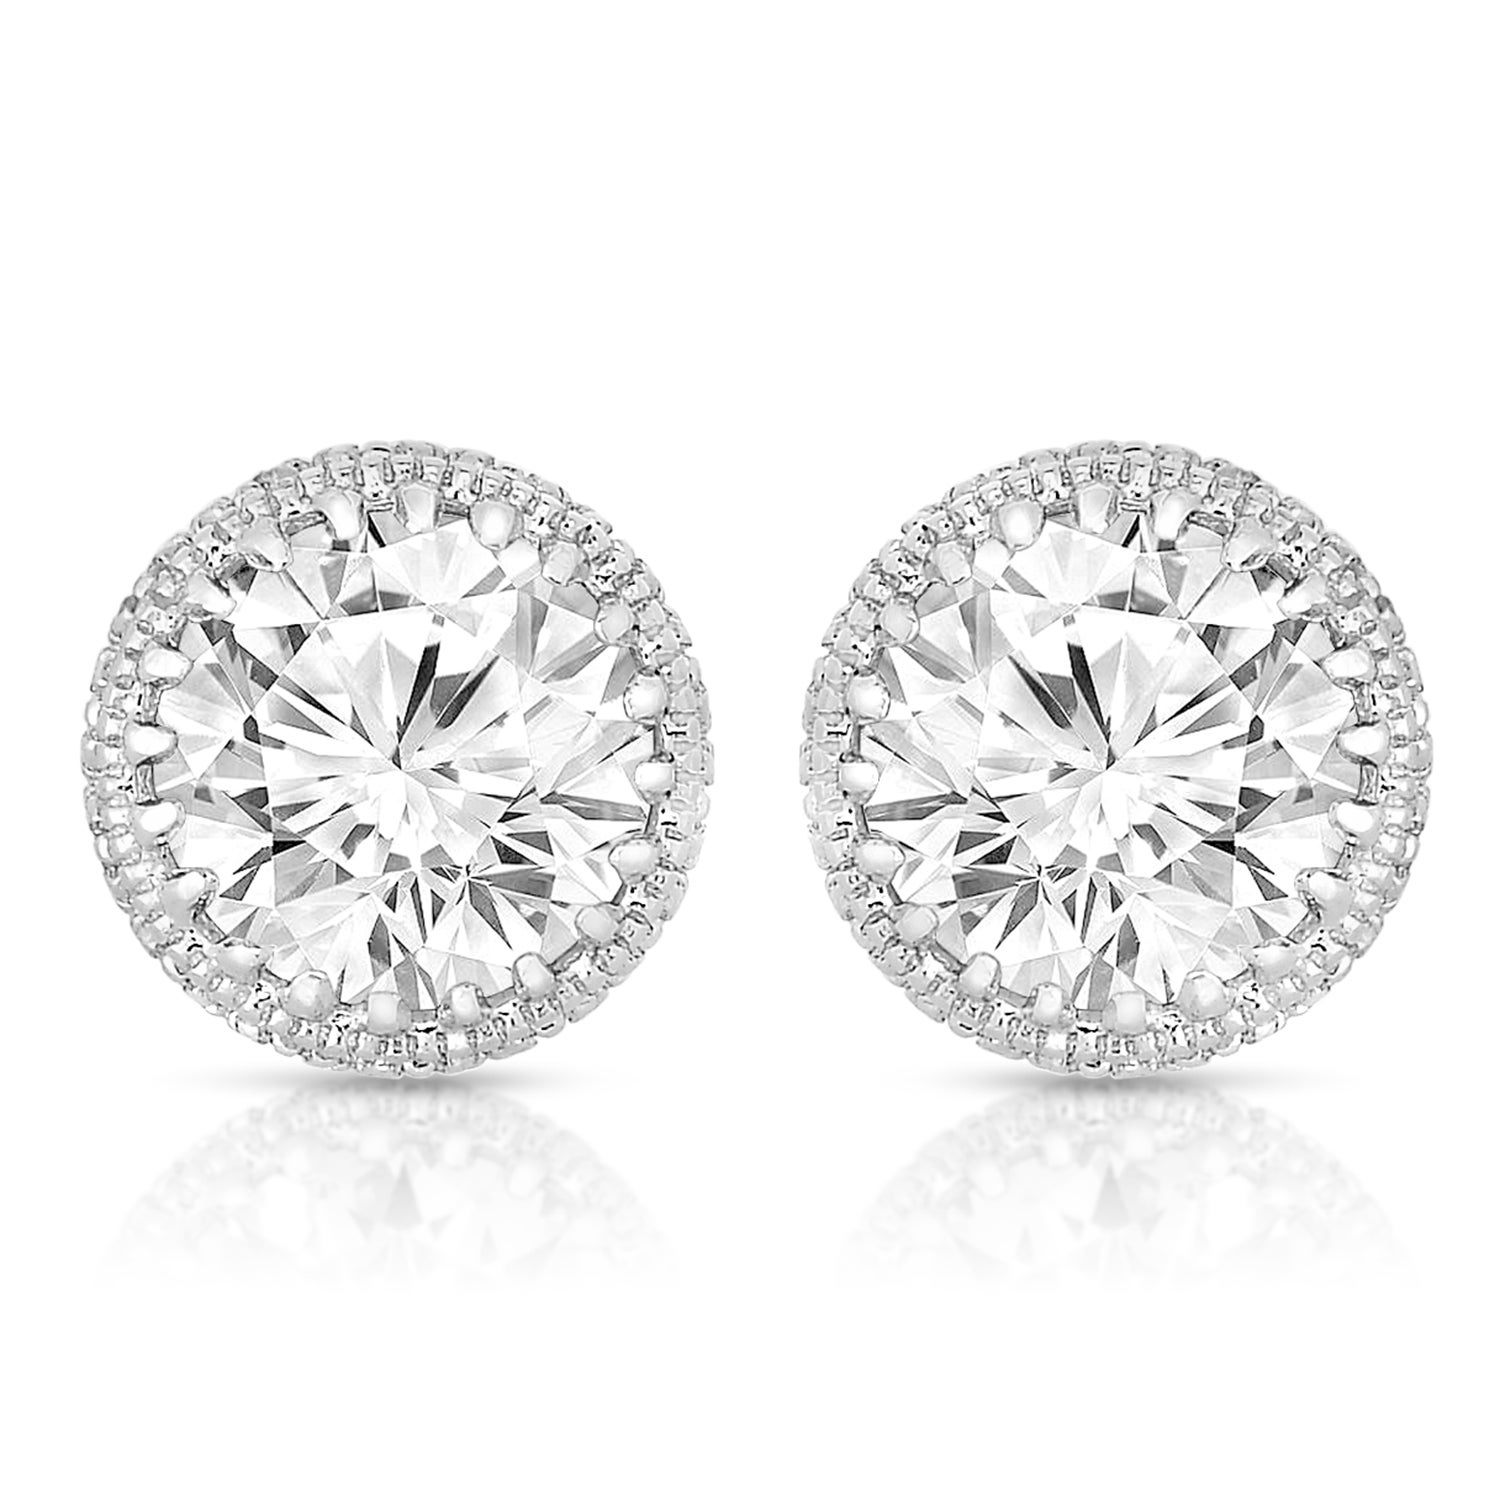 Collette Z Sterling Silver Round Cut Cubic Zirconia Earrings On Free Shipping Orders Over 45 8676477